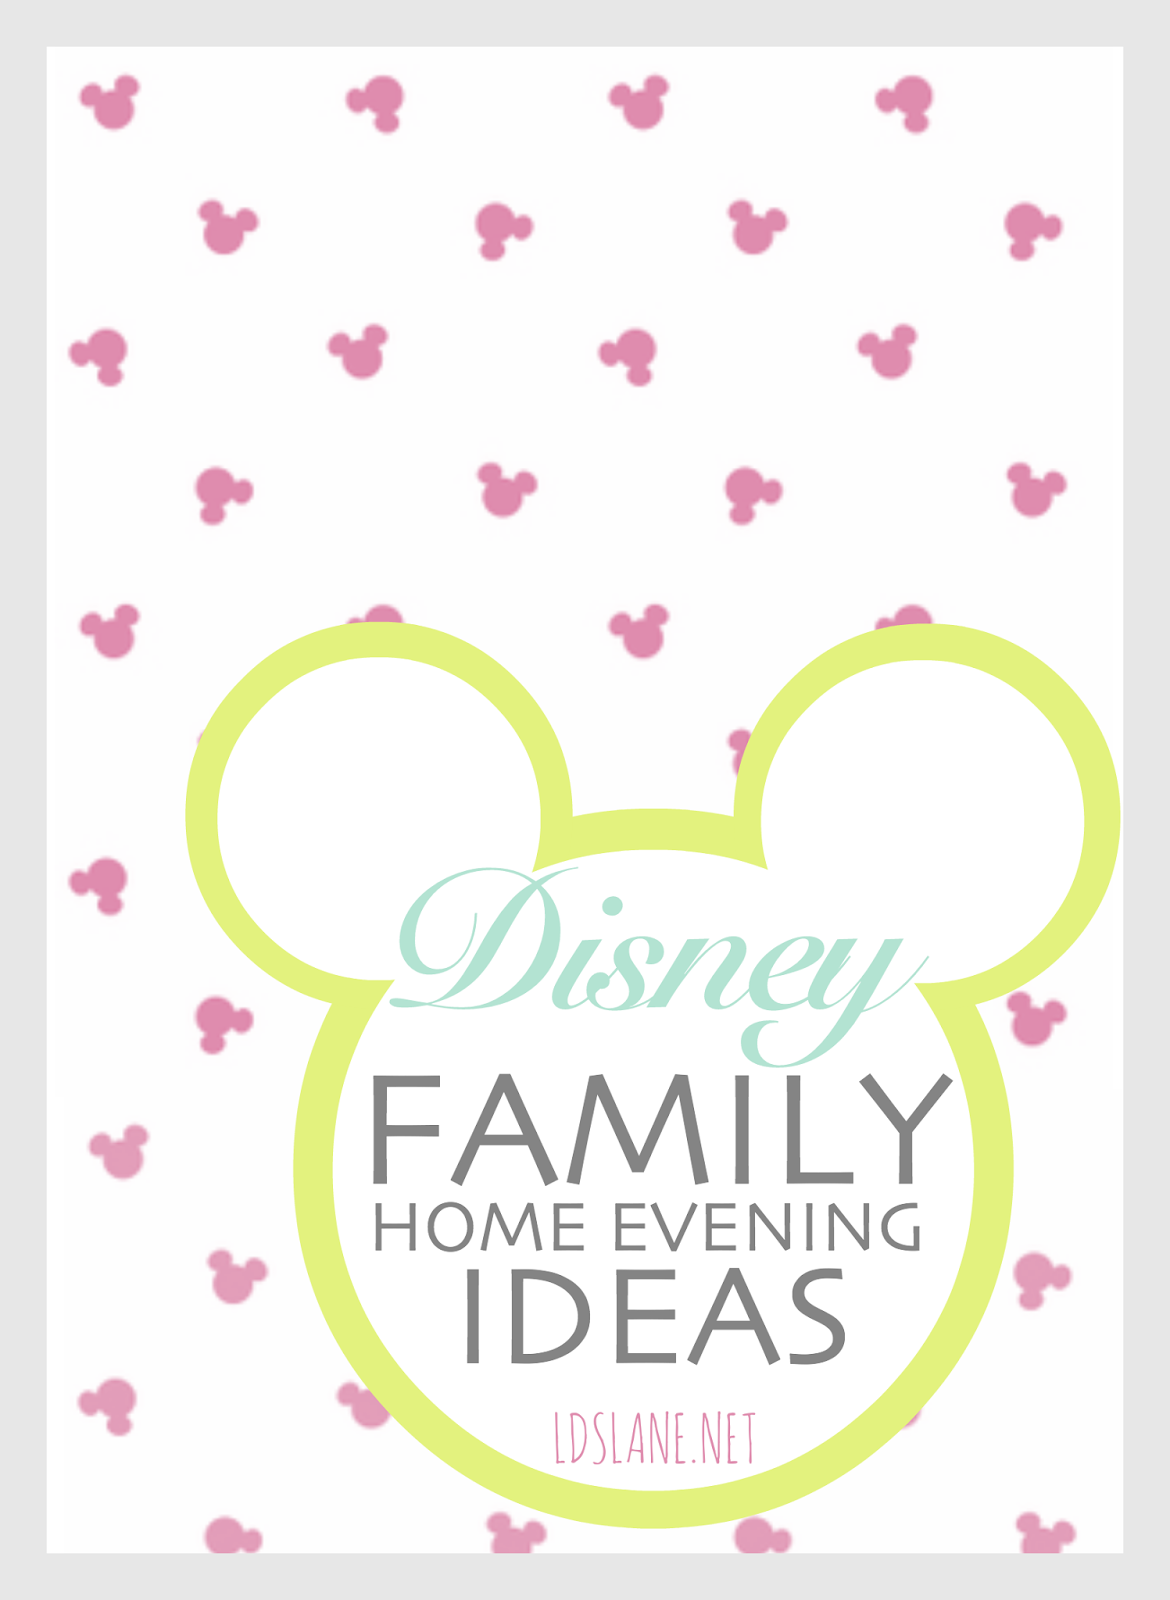 Family Home Evening Disney Movies LDS Lane Disney movies